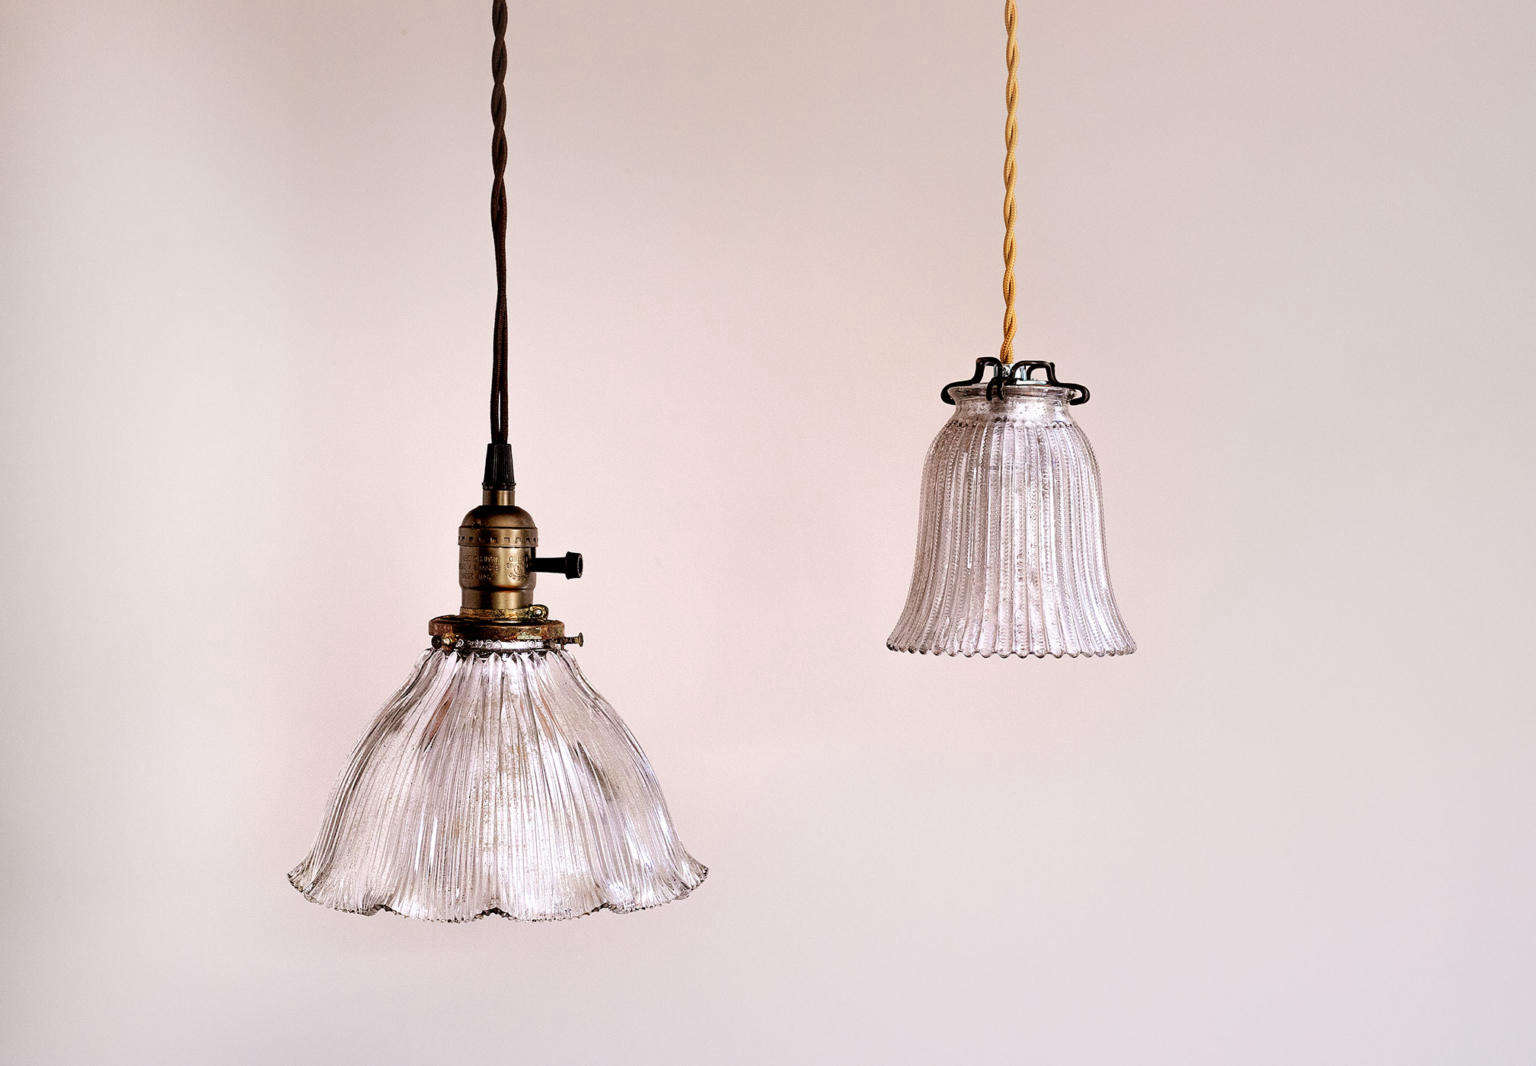 How To Make A Vintage Looking Mercury Glass Pendant Lights